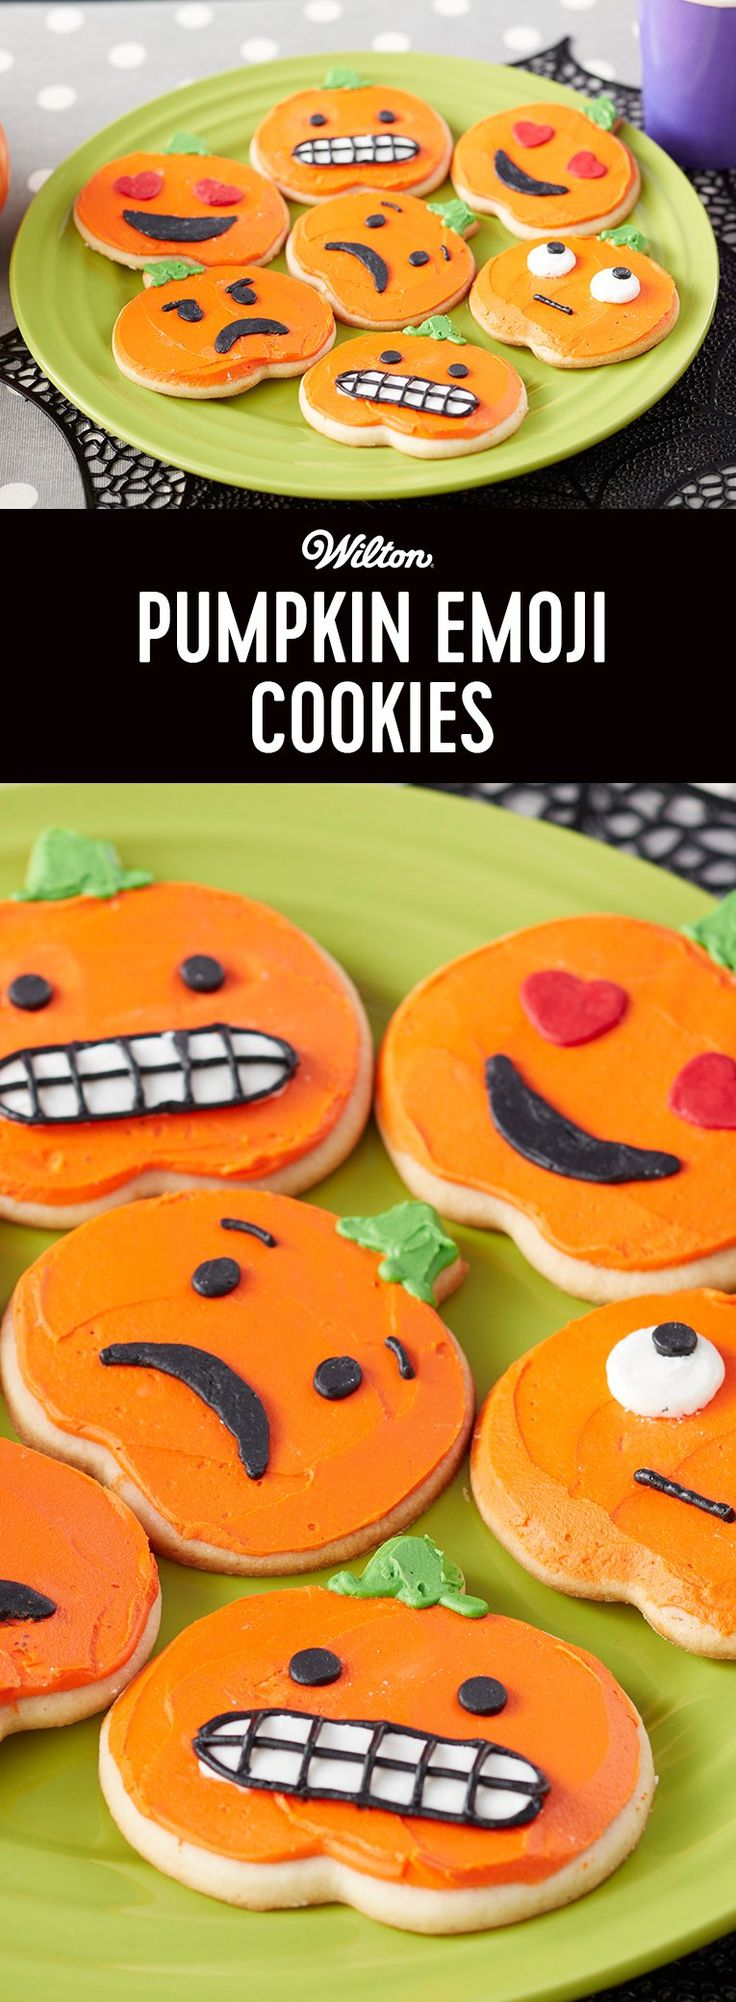 Easter eggs basket coloring pages thefairs - Pumpkin Emoji Cookies Forget Carving Pumpkins This Year With These Pumpkin Emoji Cookies You Can Make Your Pumpkin As Expressive As You D Like